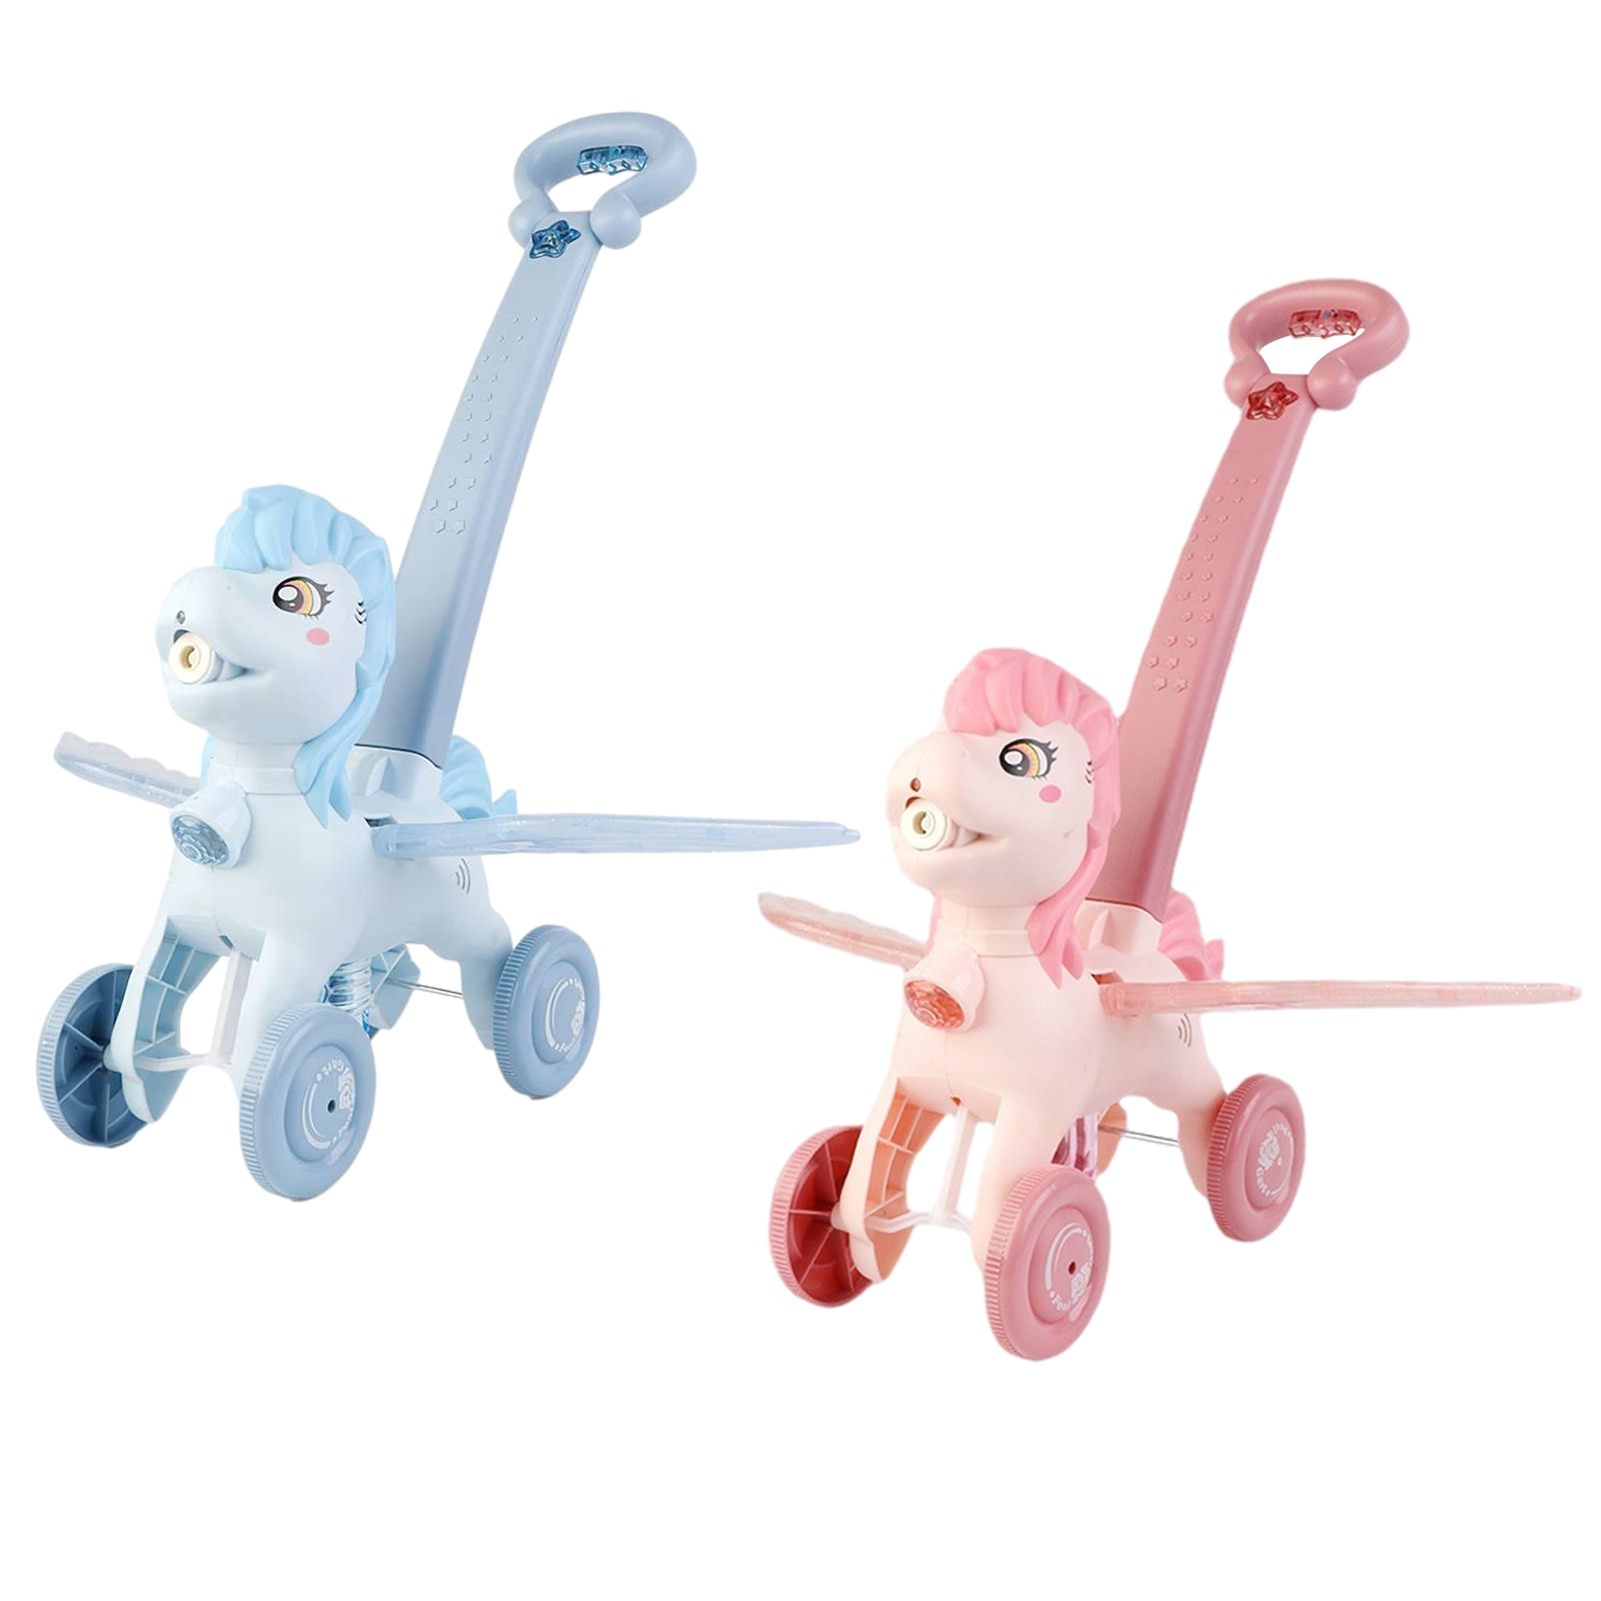 Kids Bubble Blowing Push Toy Outdoor Electric Bubble Automatic Blowing Machine Children Hand Push Cute Animal Bubbles Maker Toy electric blowing bubble stick toy automatic magic stick bubble machine children blowing bubble outdoor toy